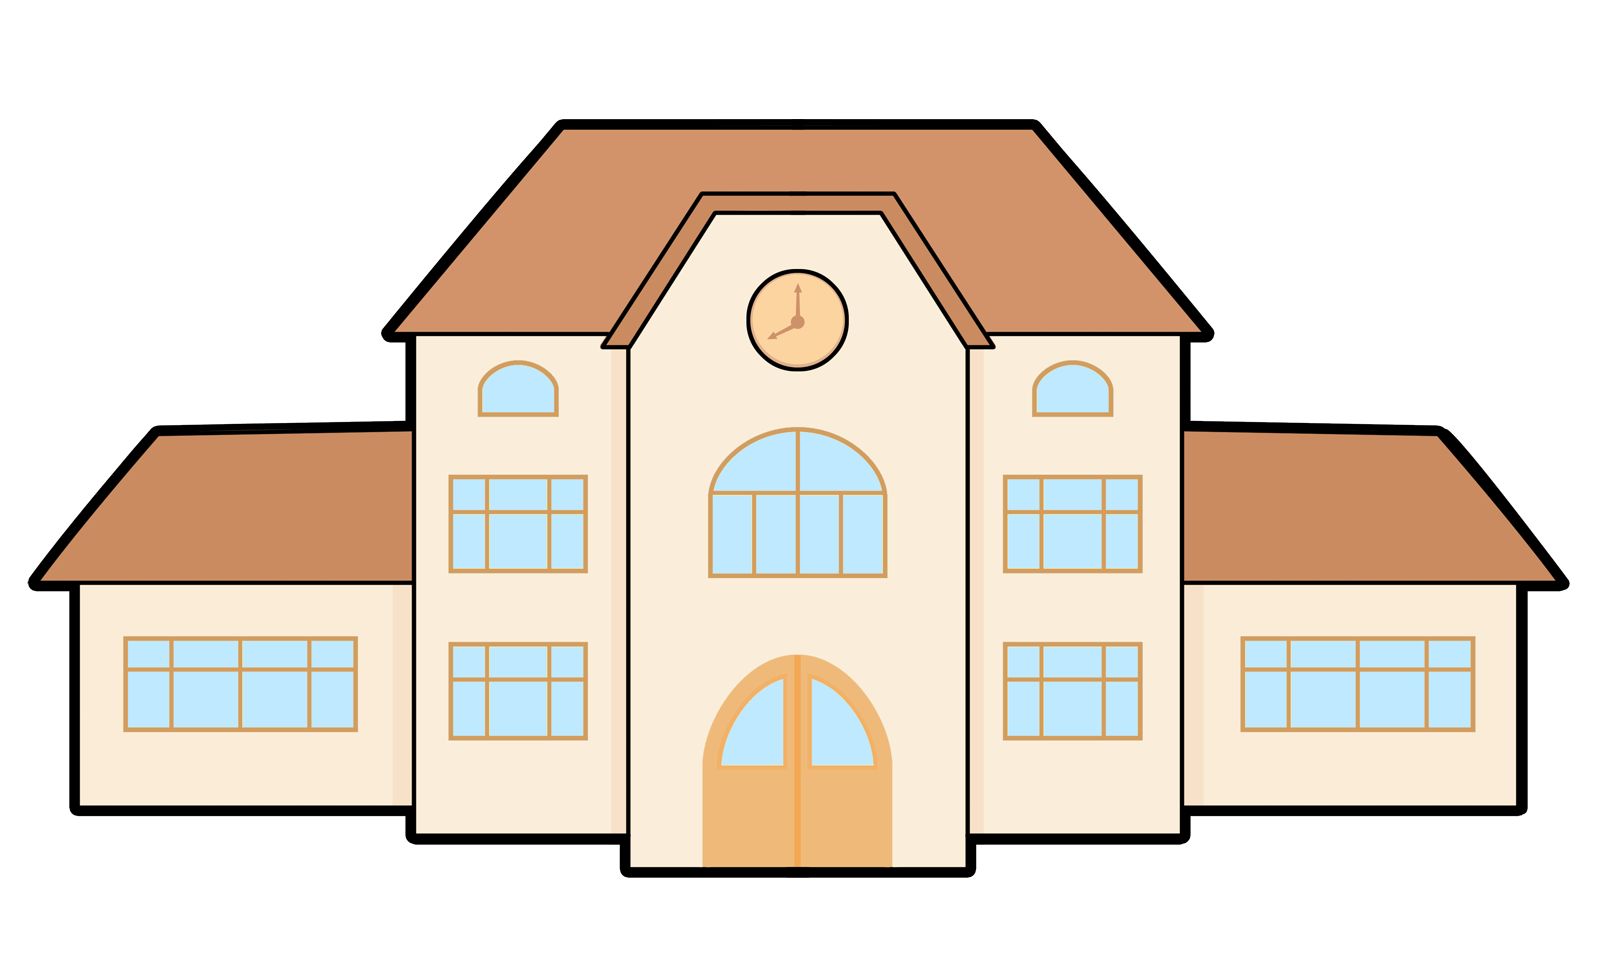 Clipart school building image library Free Clipart Of Buildings - Real Clipart And Vector Graphics • image library